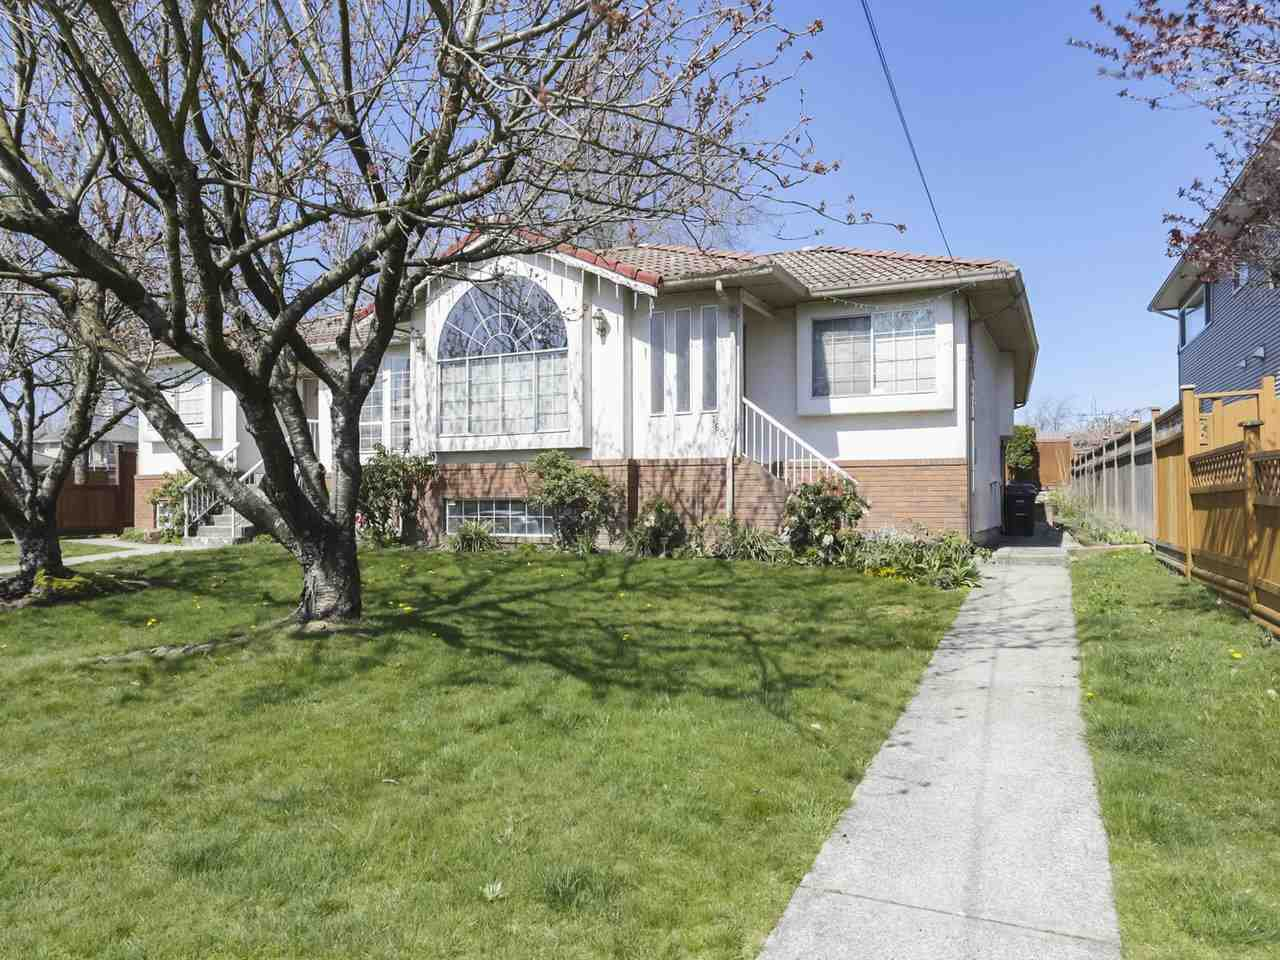 Main Photo: 7607 14TH Avenue in Burnaby: Edmonds BE House 1/2 Duplex for sale (Burnaby East)  : MLS®# R2450550